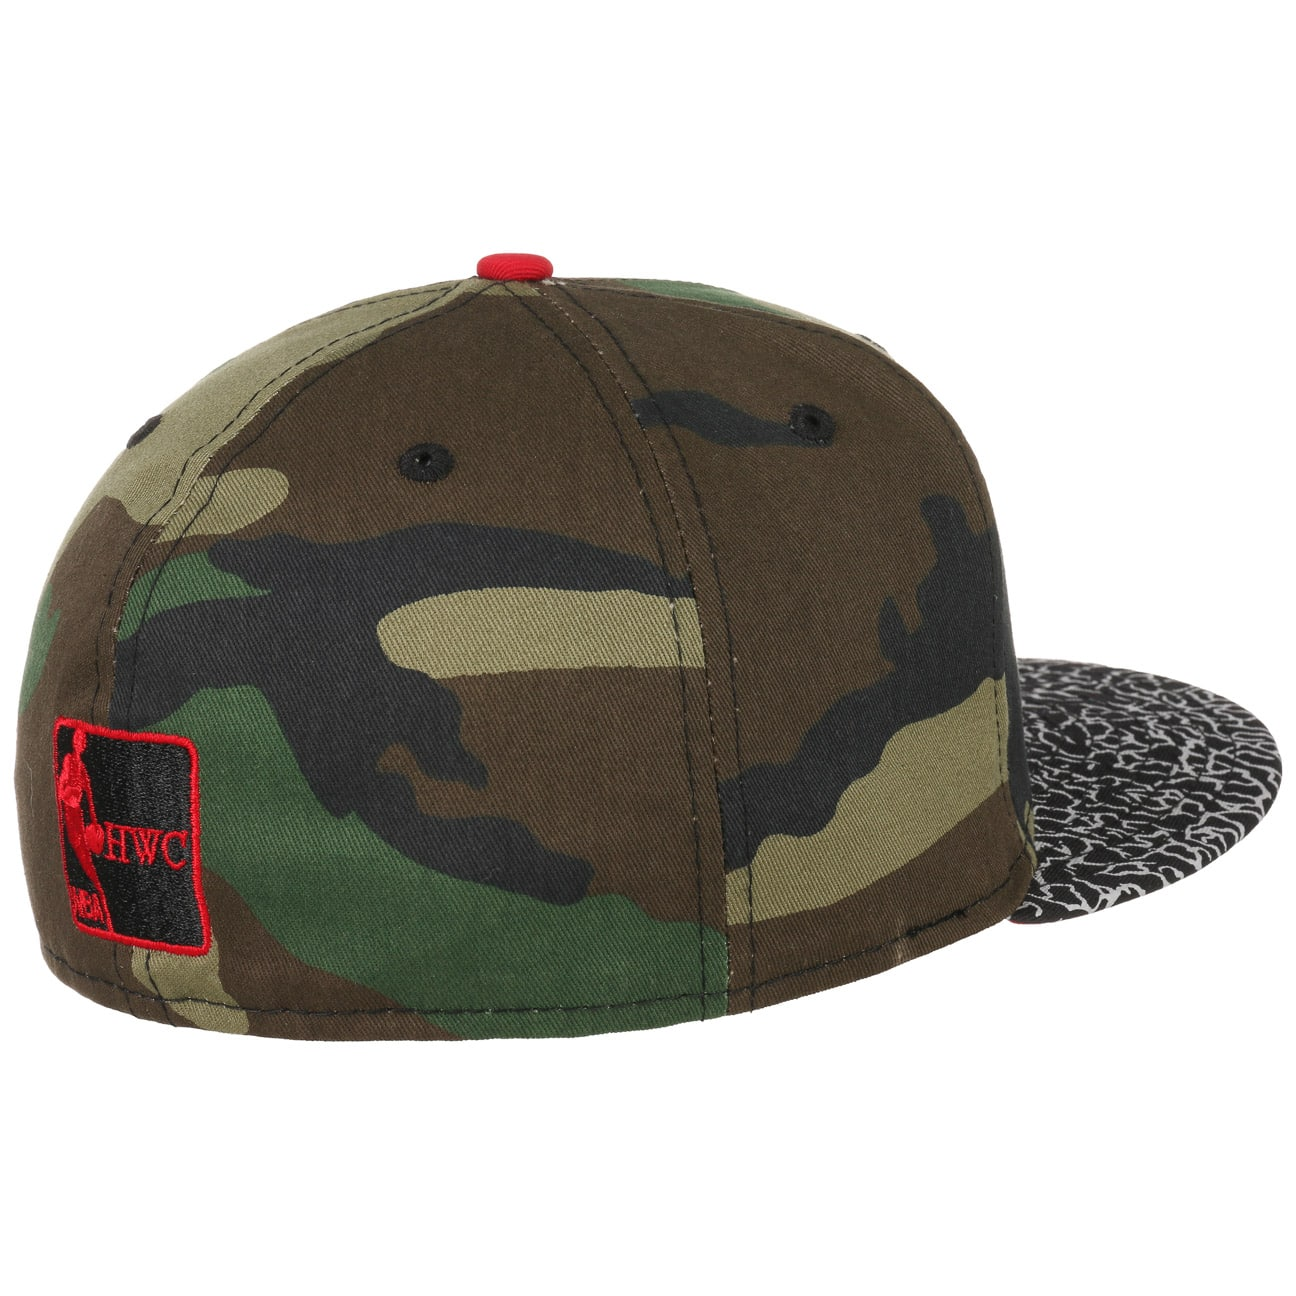 59fifty bulls camouflage cap by new era gbp 16 95. Black Bedroom Furniture Sets. Home Design Ideas